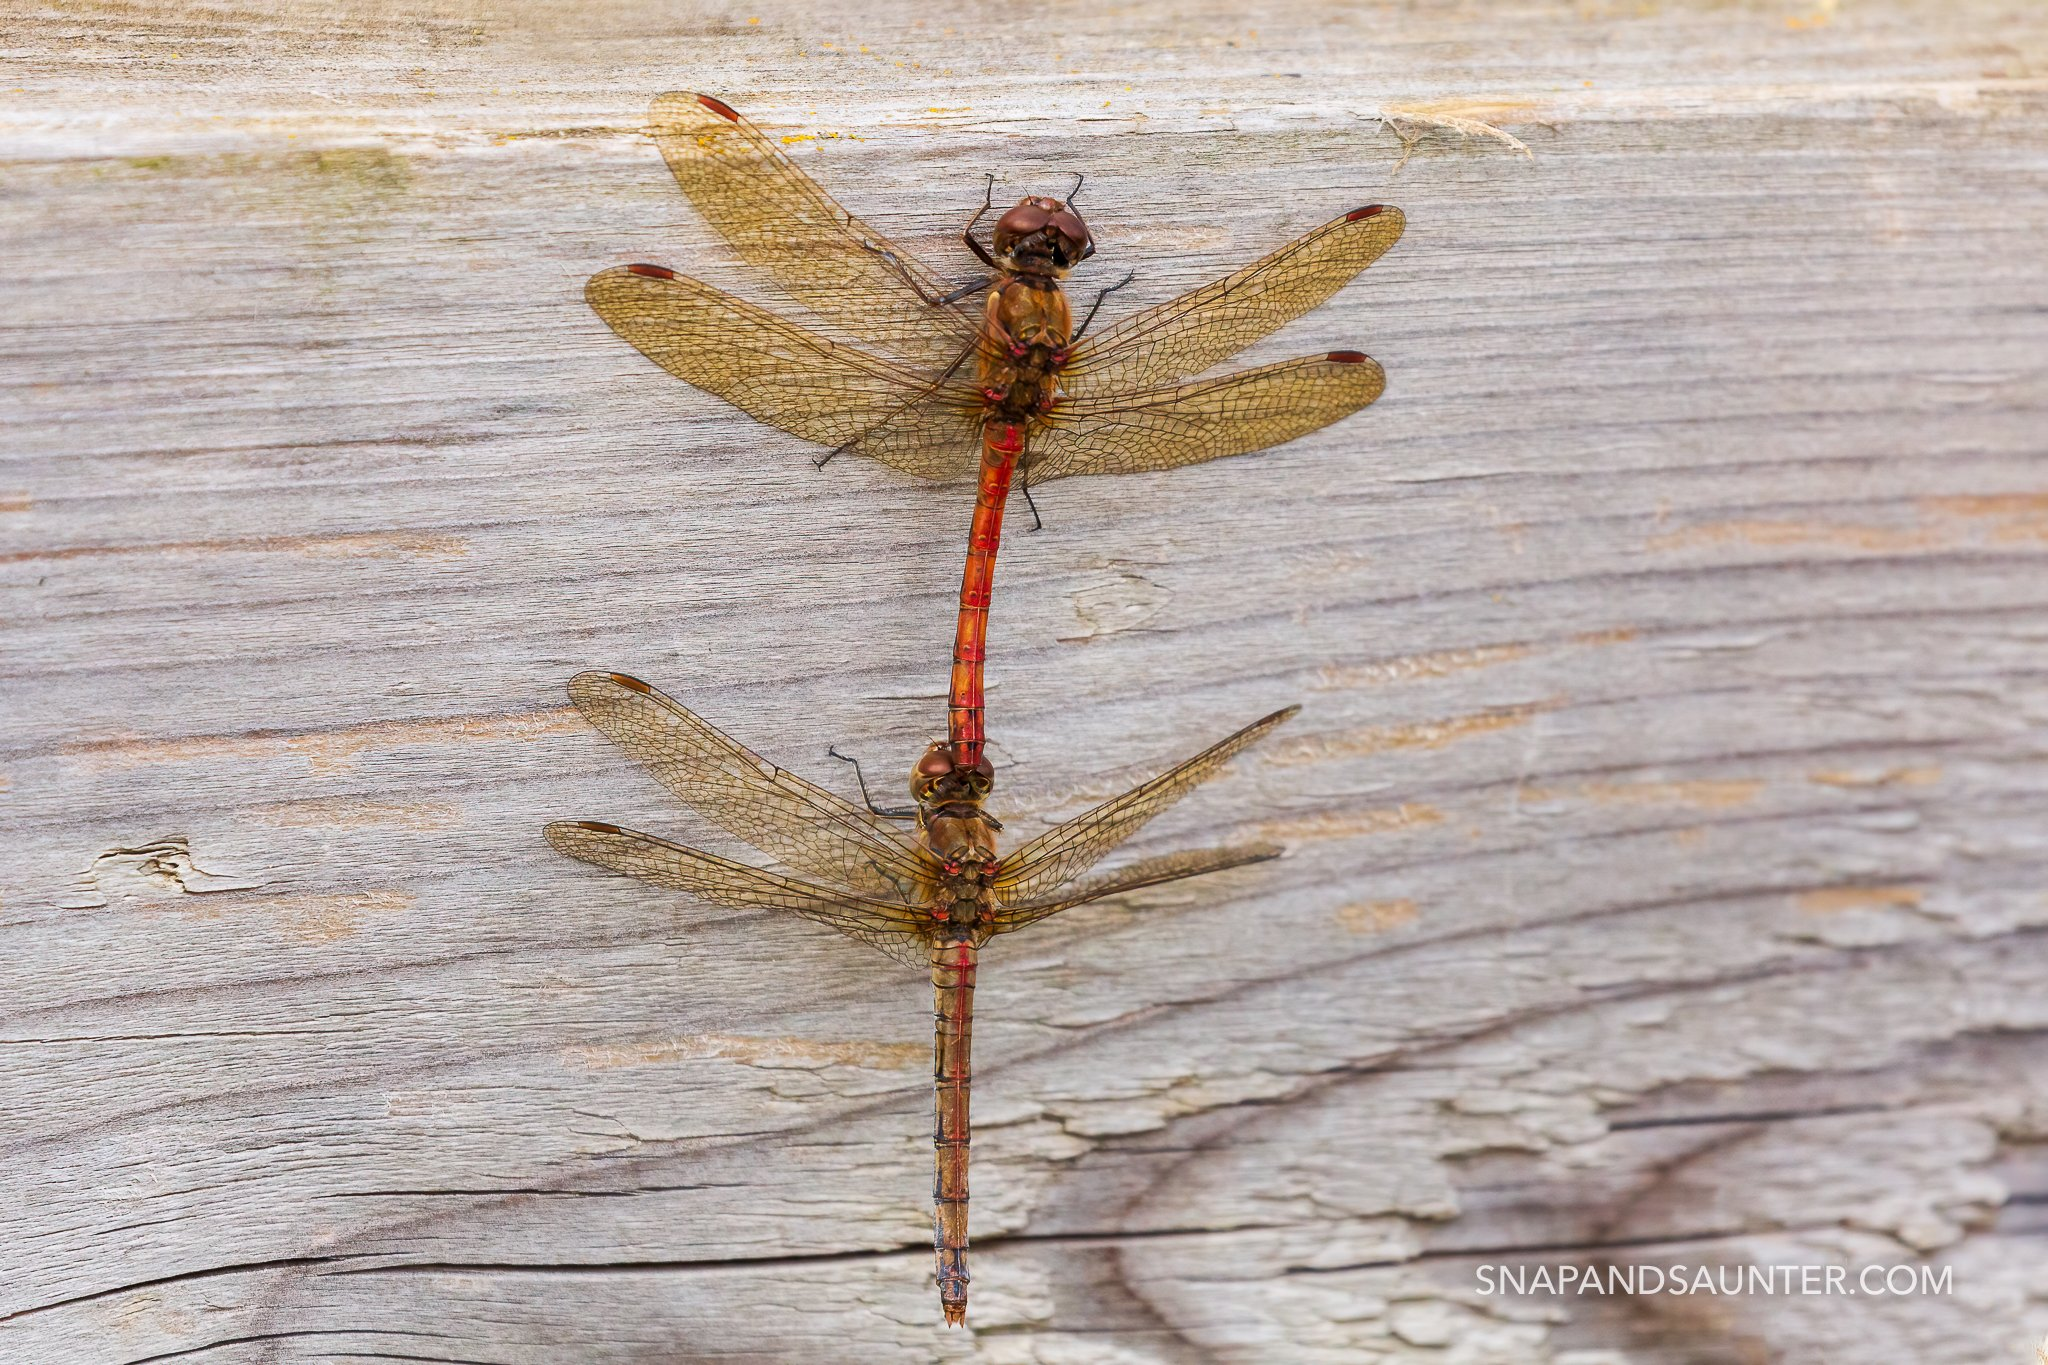 mating dragonflies in the Potteric Carr nature reserve